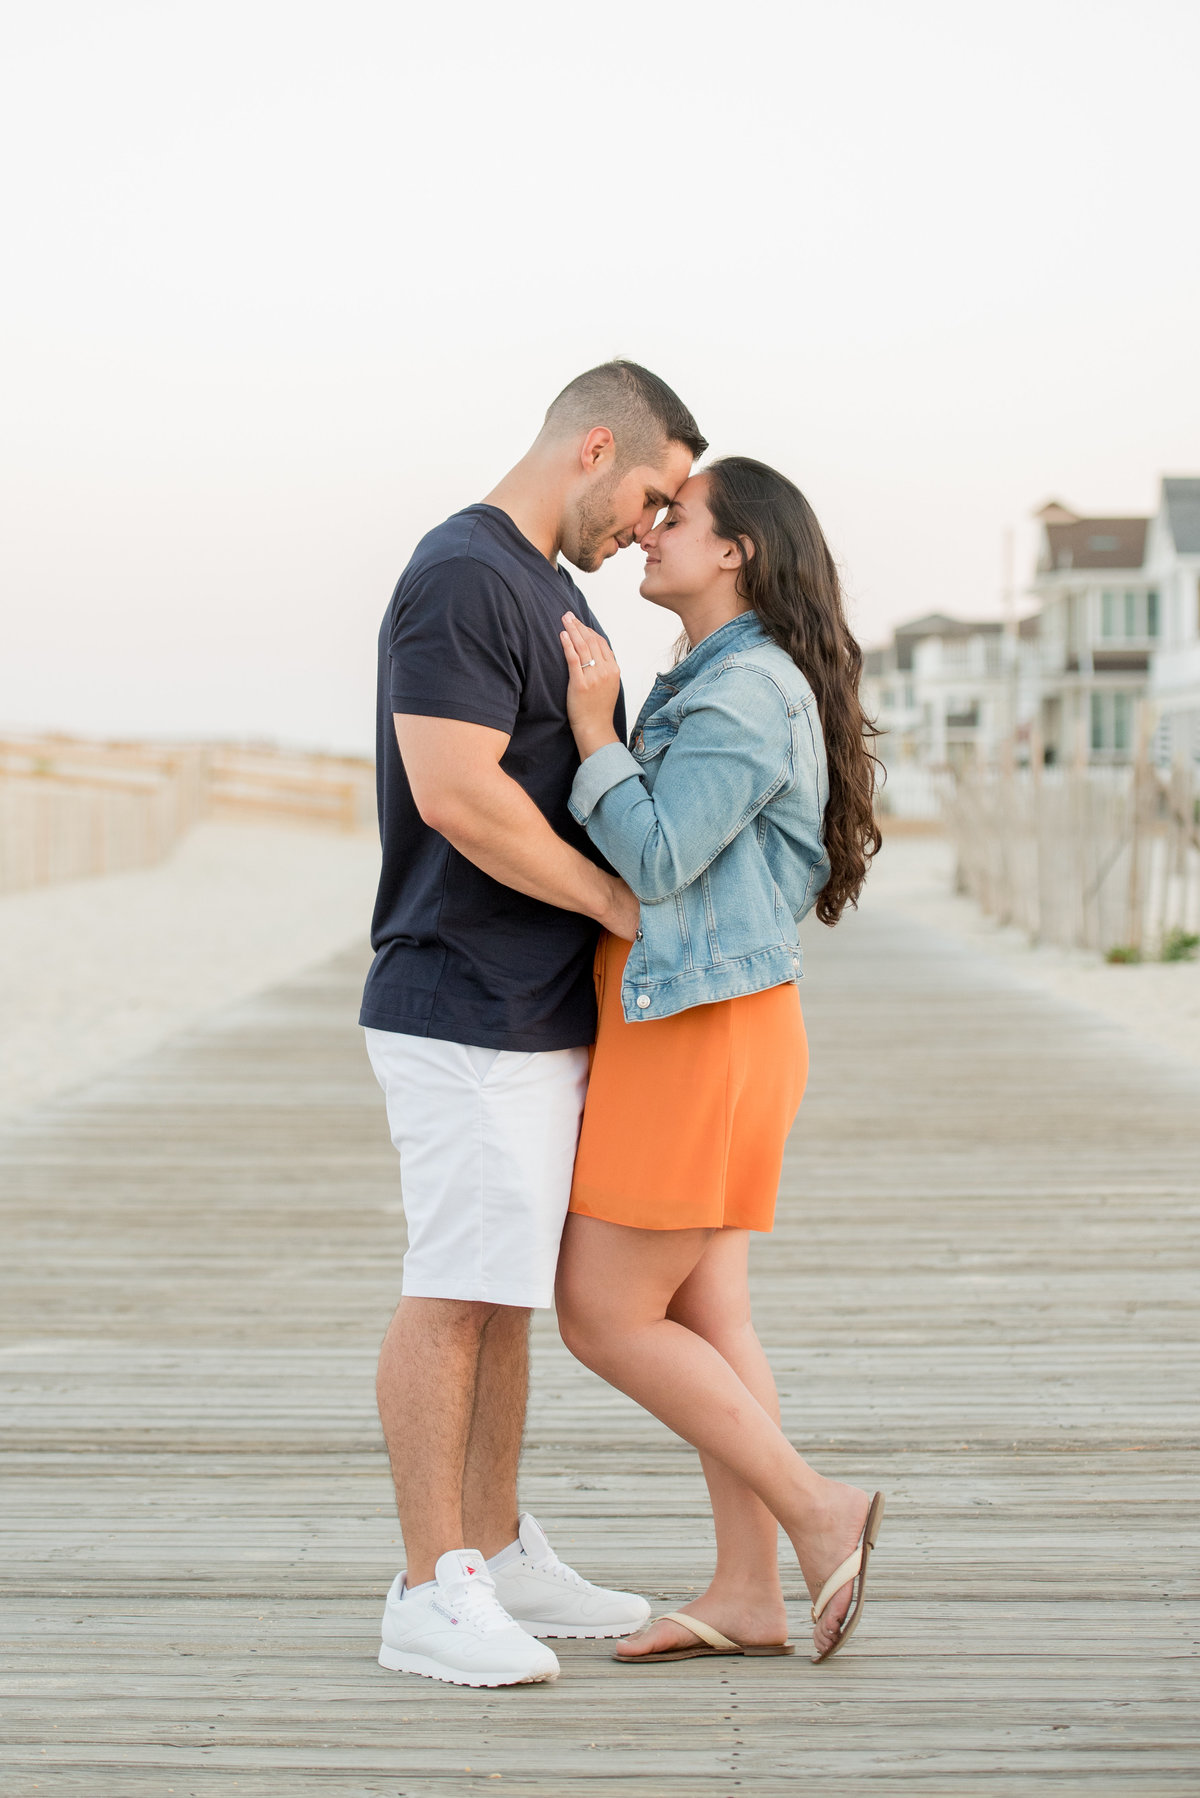 lisa-albino-lavallette-beach-surprise-proposal-imagery-by-marianne-2019-94